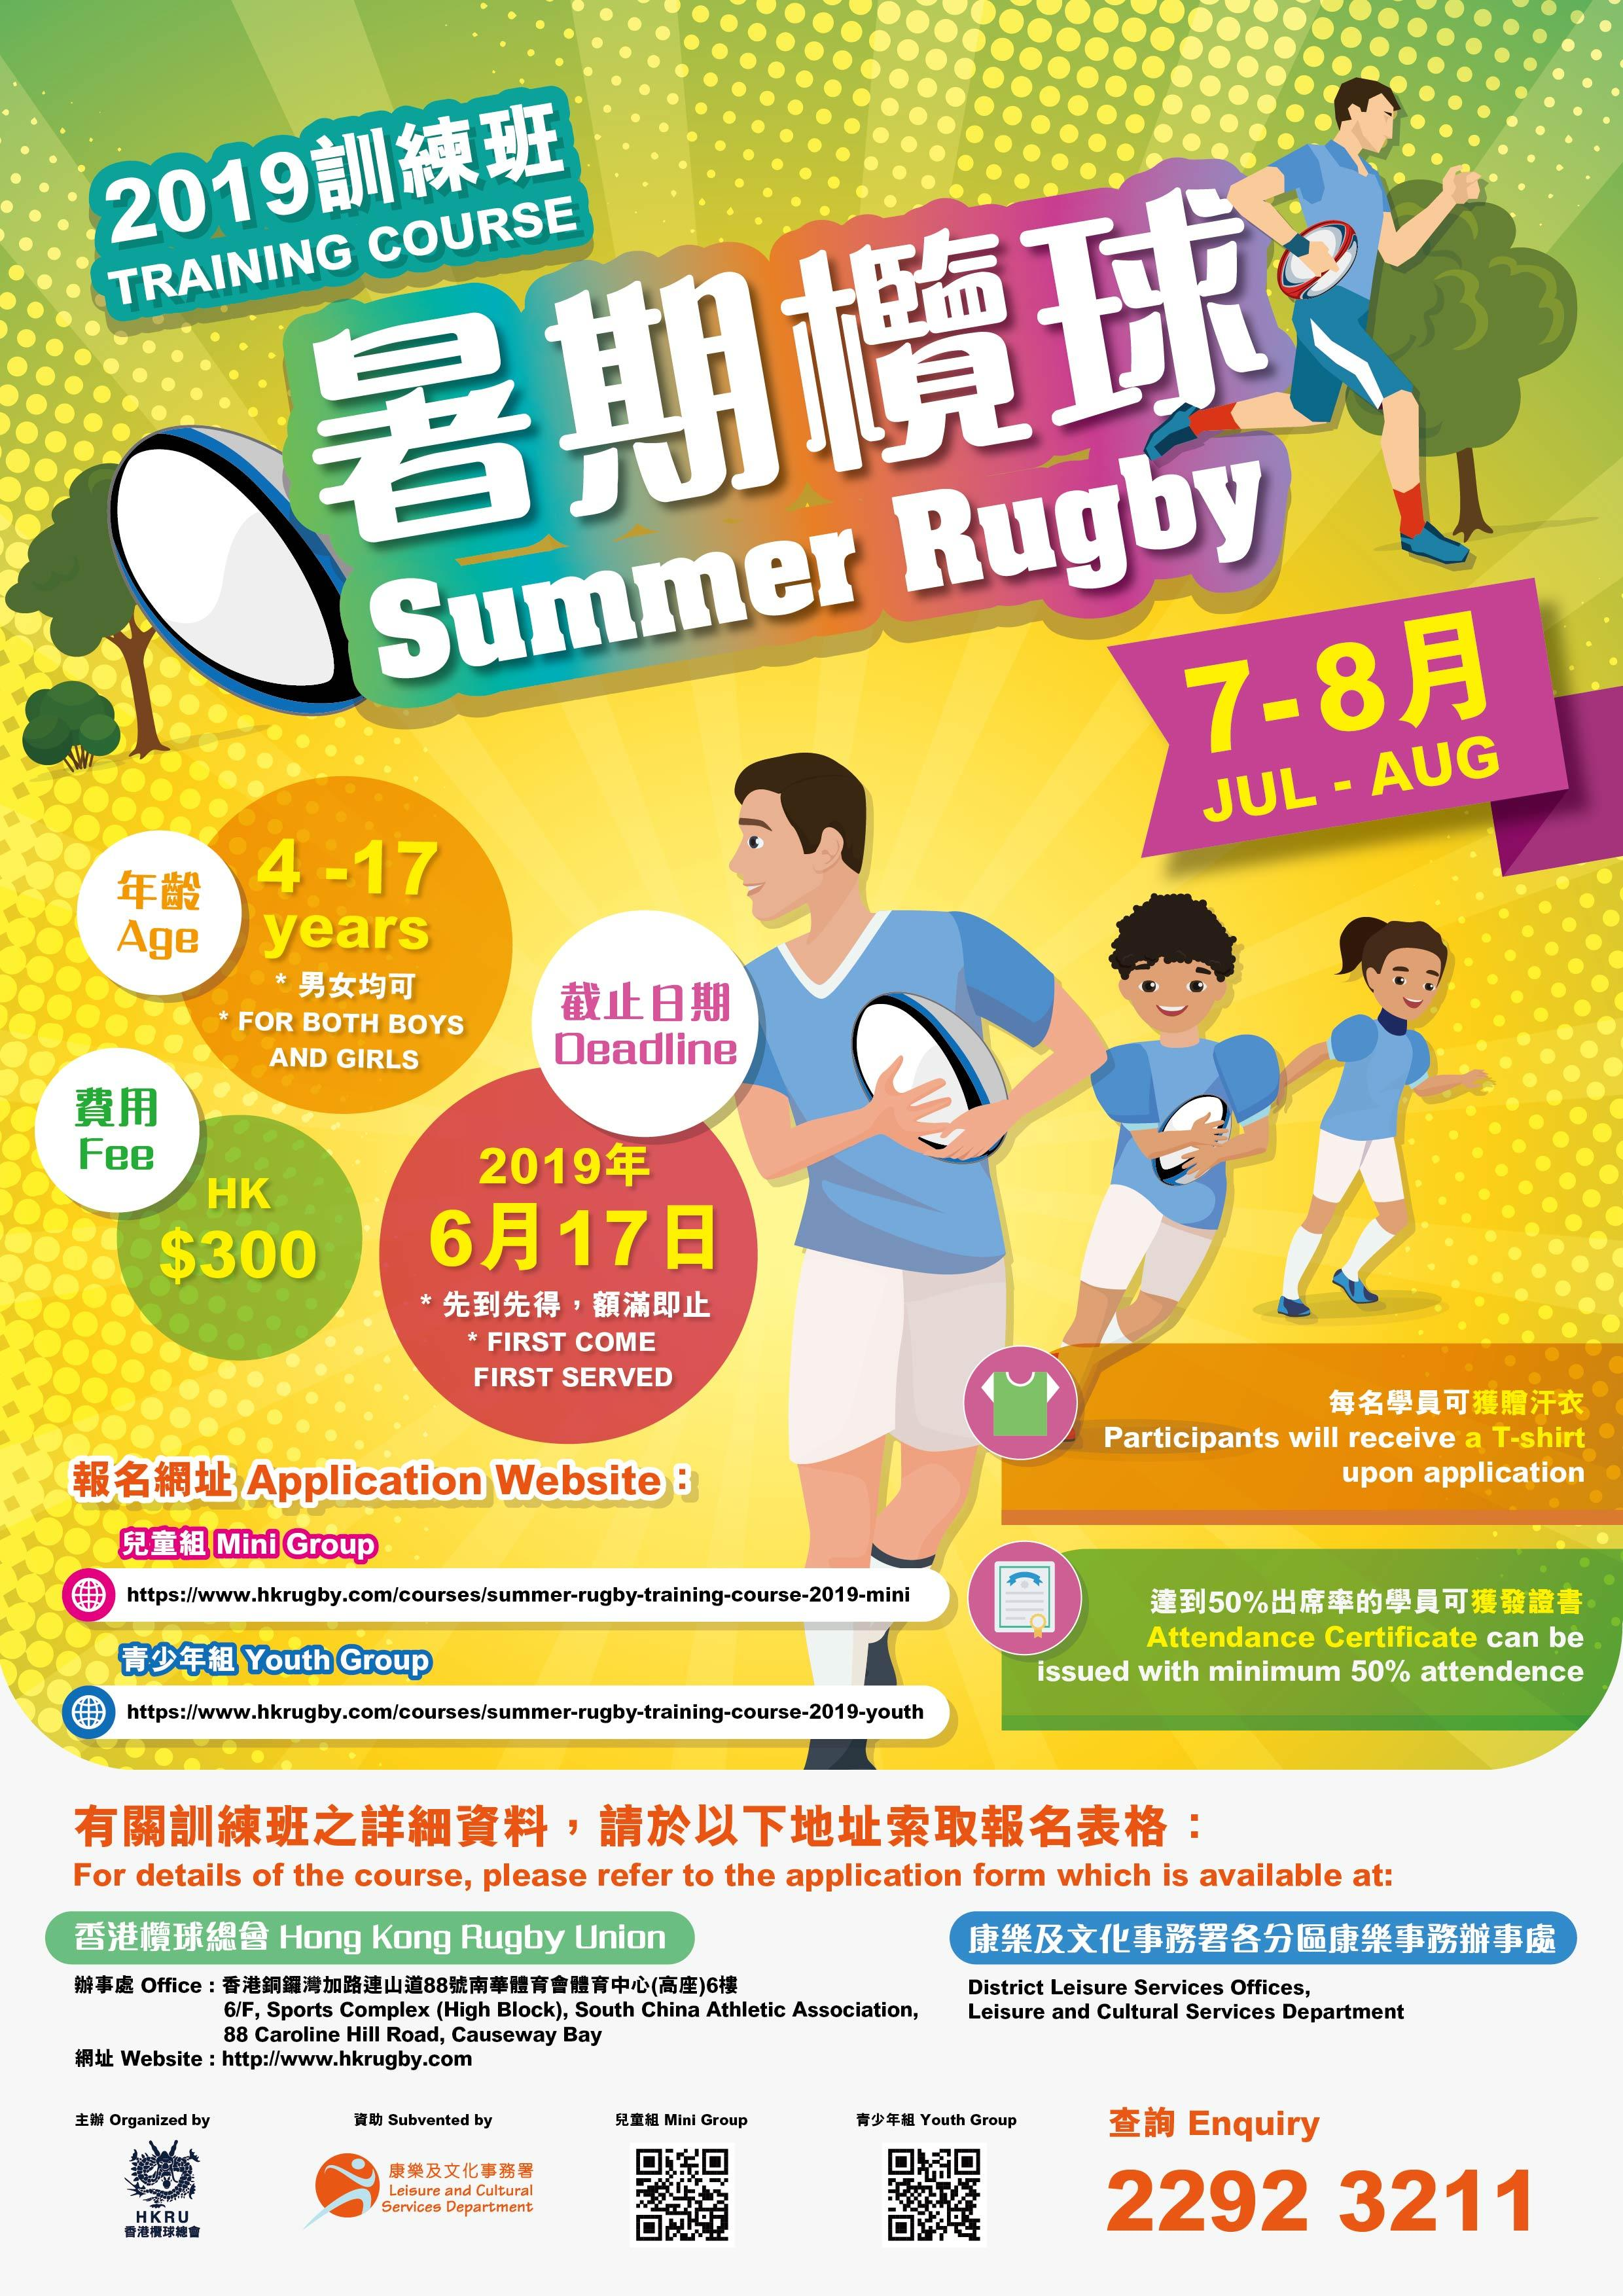 Summer Rugby Training Course 2019 - Mini (Age 4-11) thumbnail